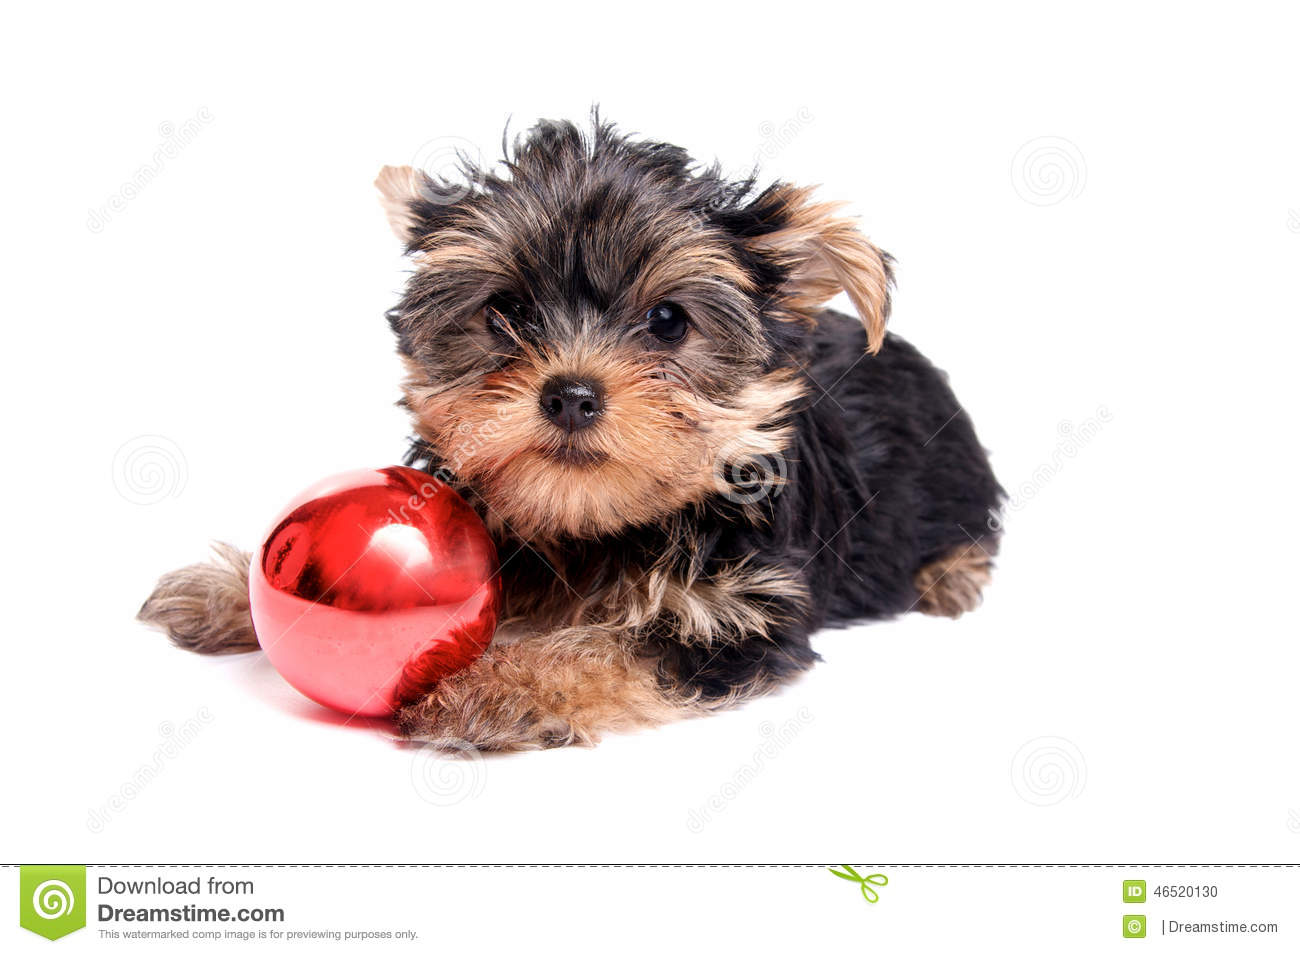 Cute Yorkie Puppy With Christmas Ornament Stock Photo Image Of Animal Seasonal 46520130